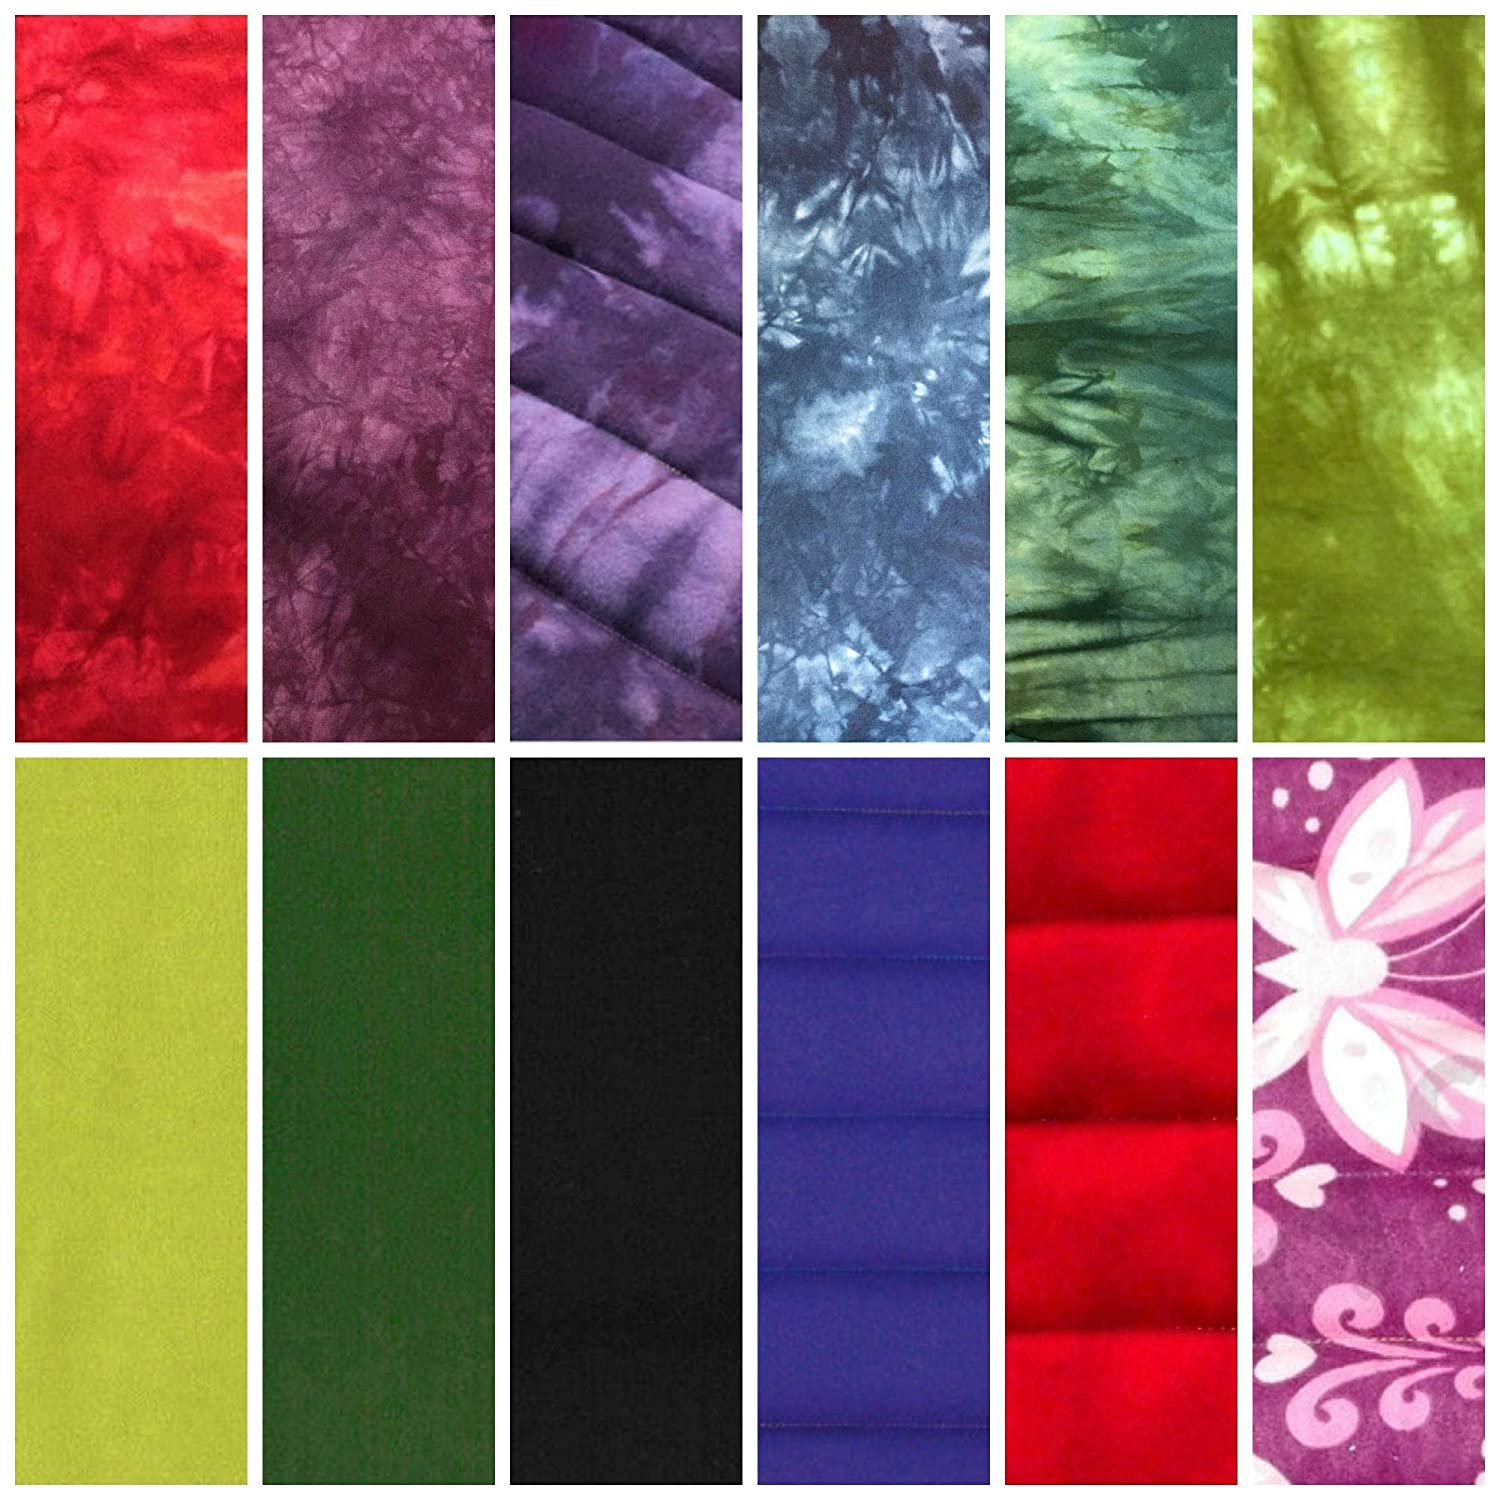 Hand-Dyed All-Purpose Organic Herbal Flax Seed Therapeutic Heating Pad and Cold Compress